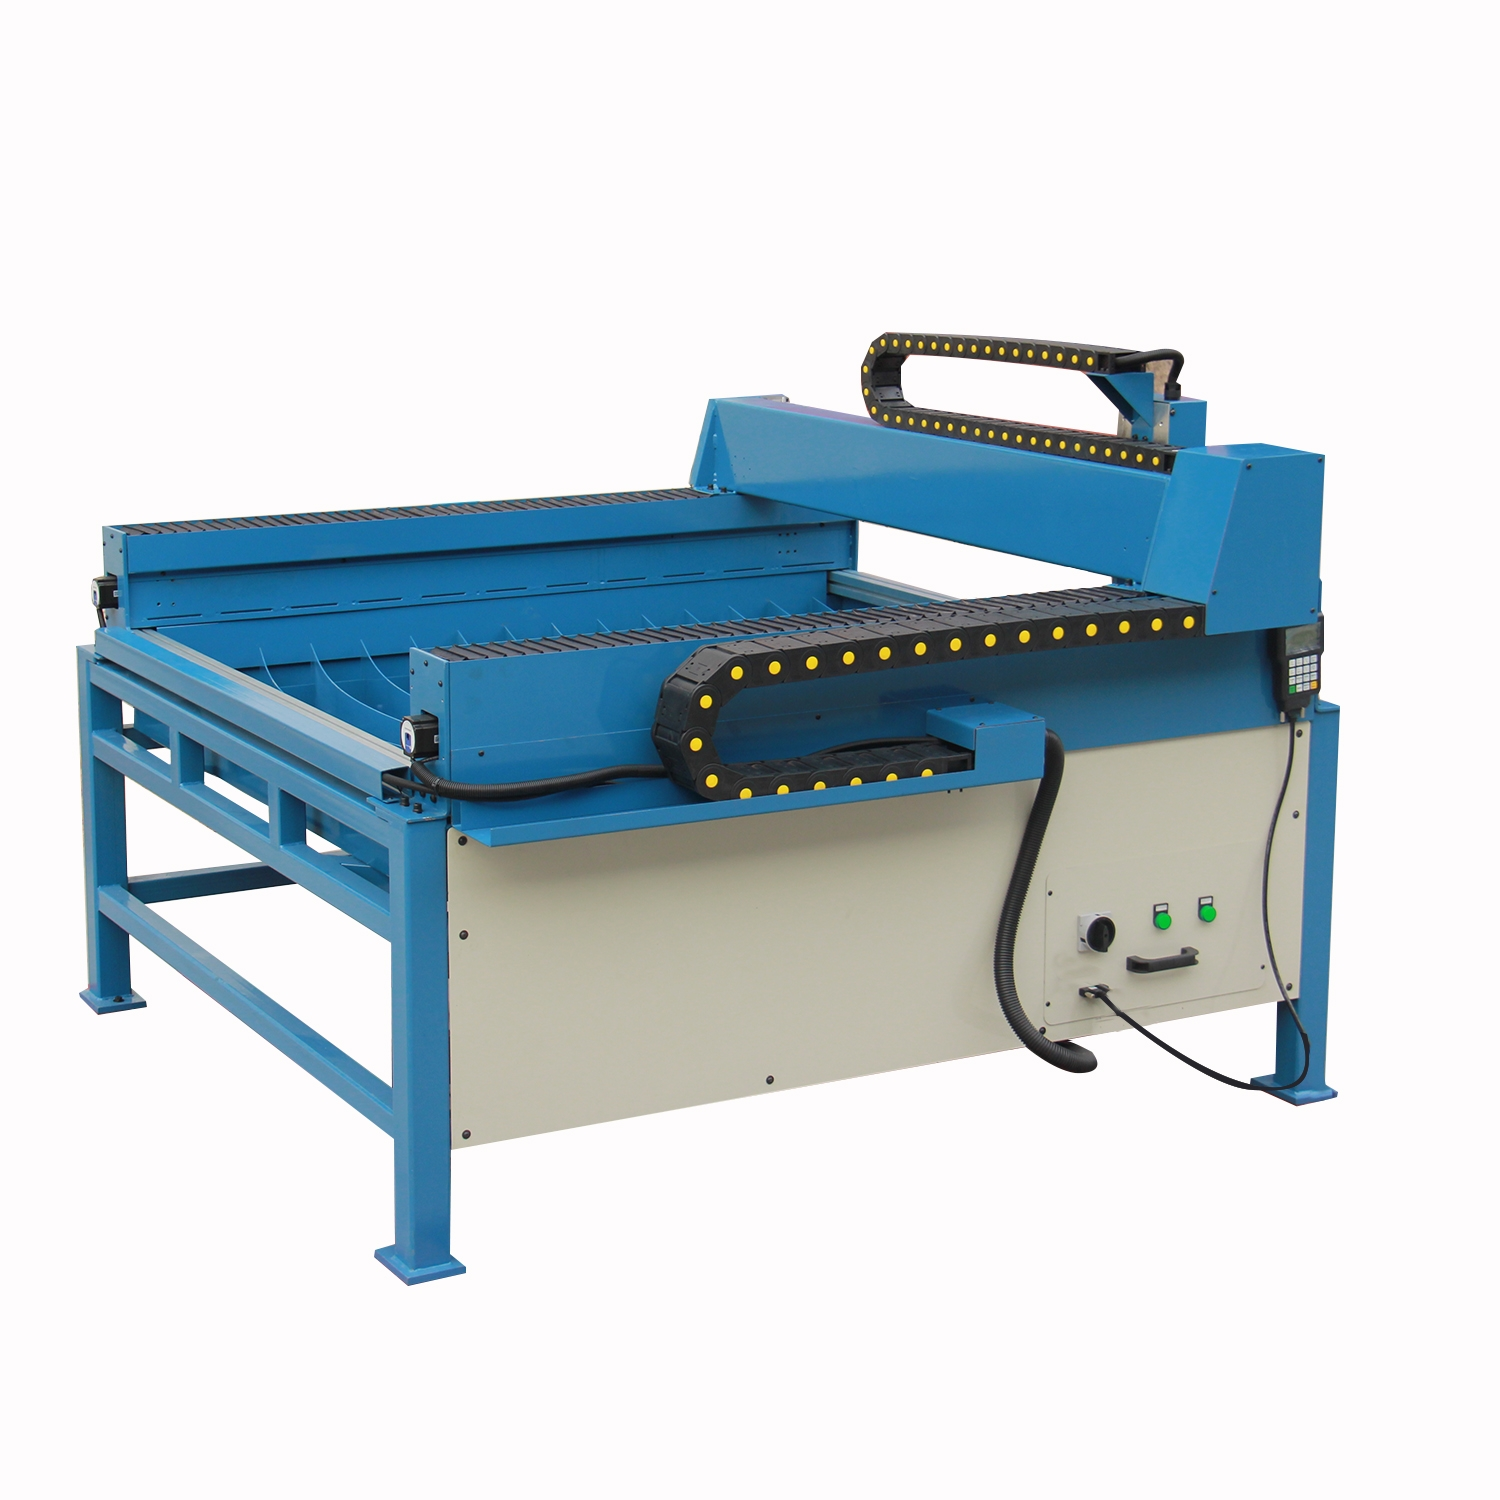 road off com plasma and size views name kb tools shop ventilation cutting table forum